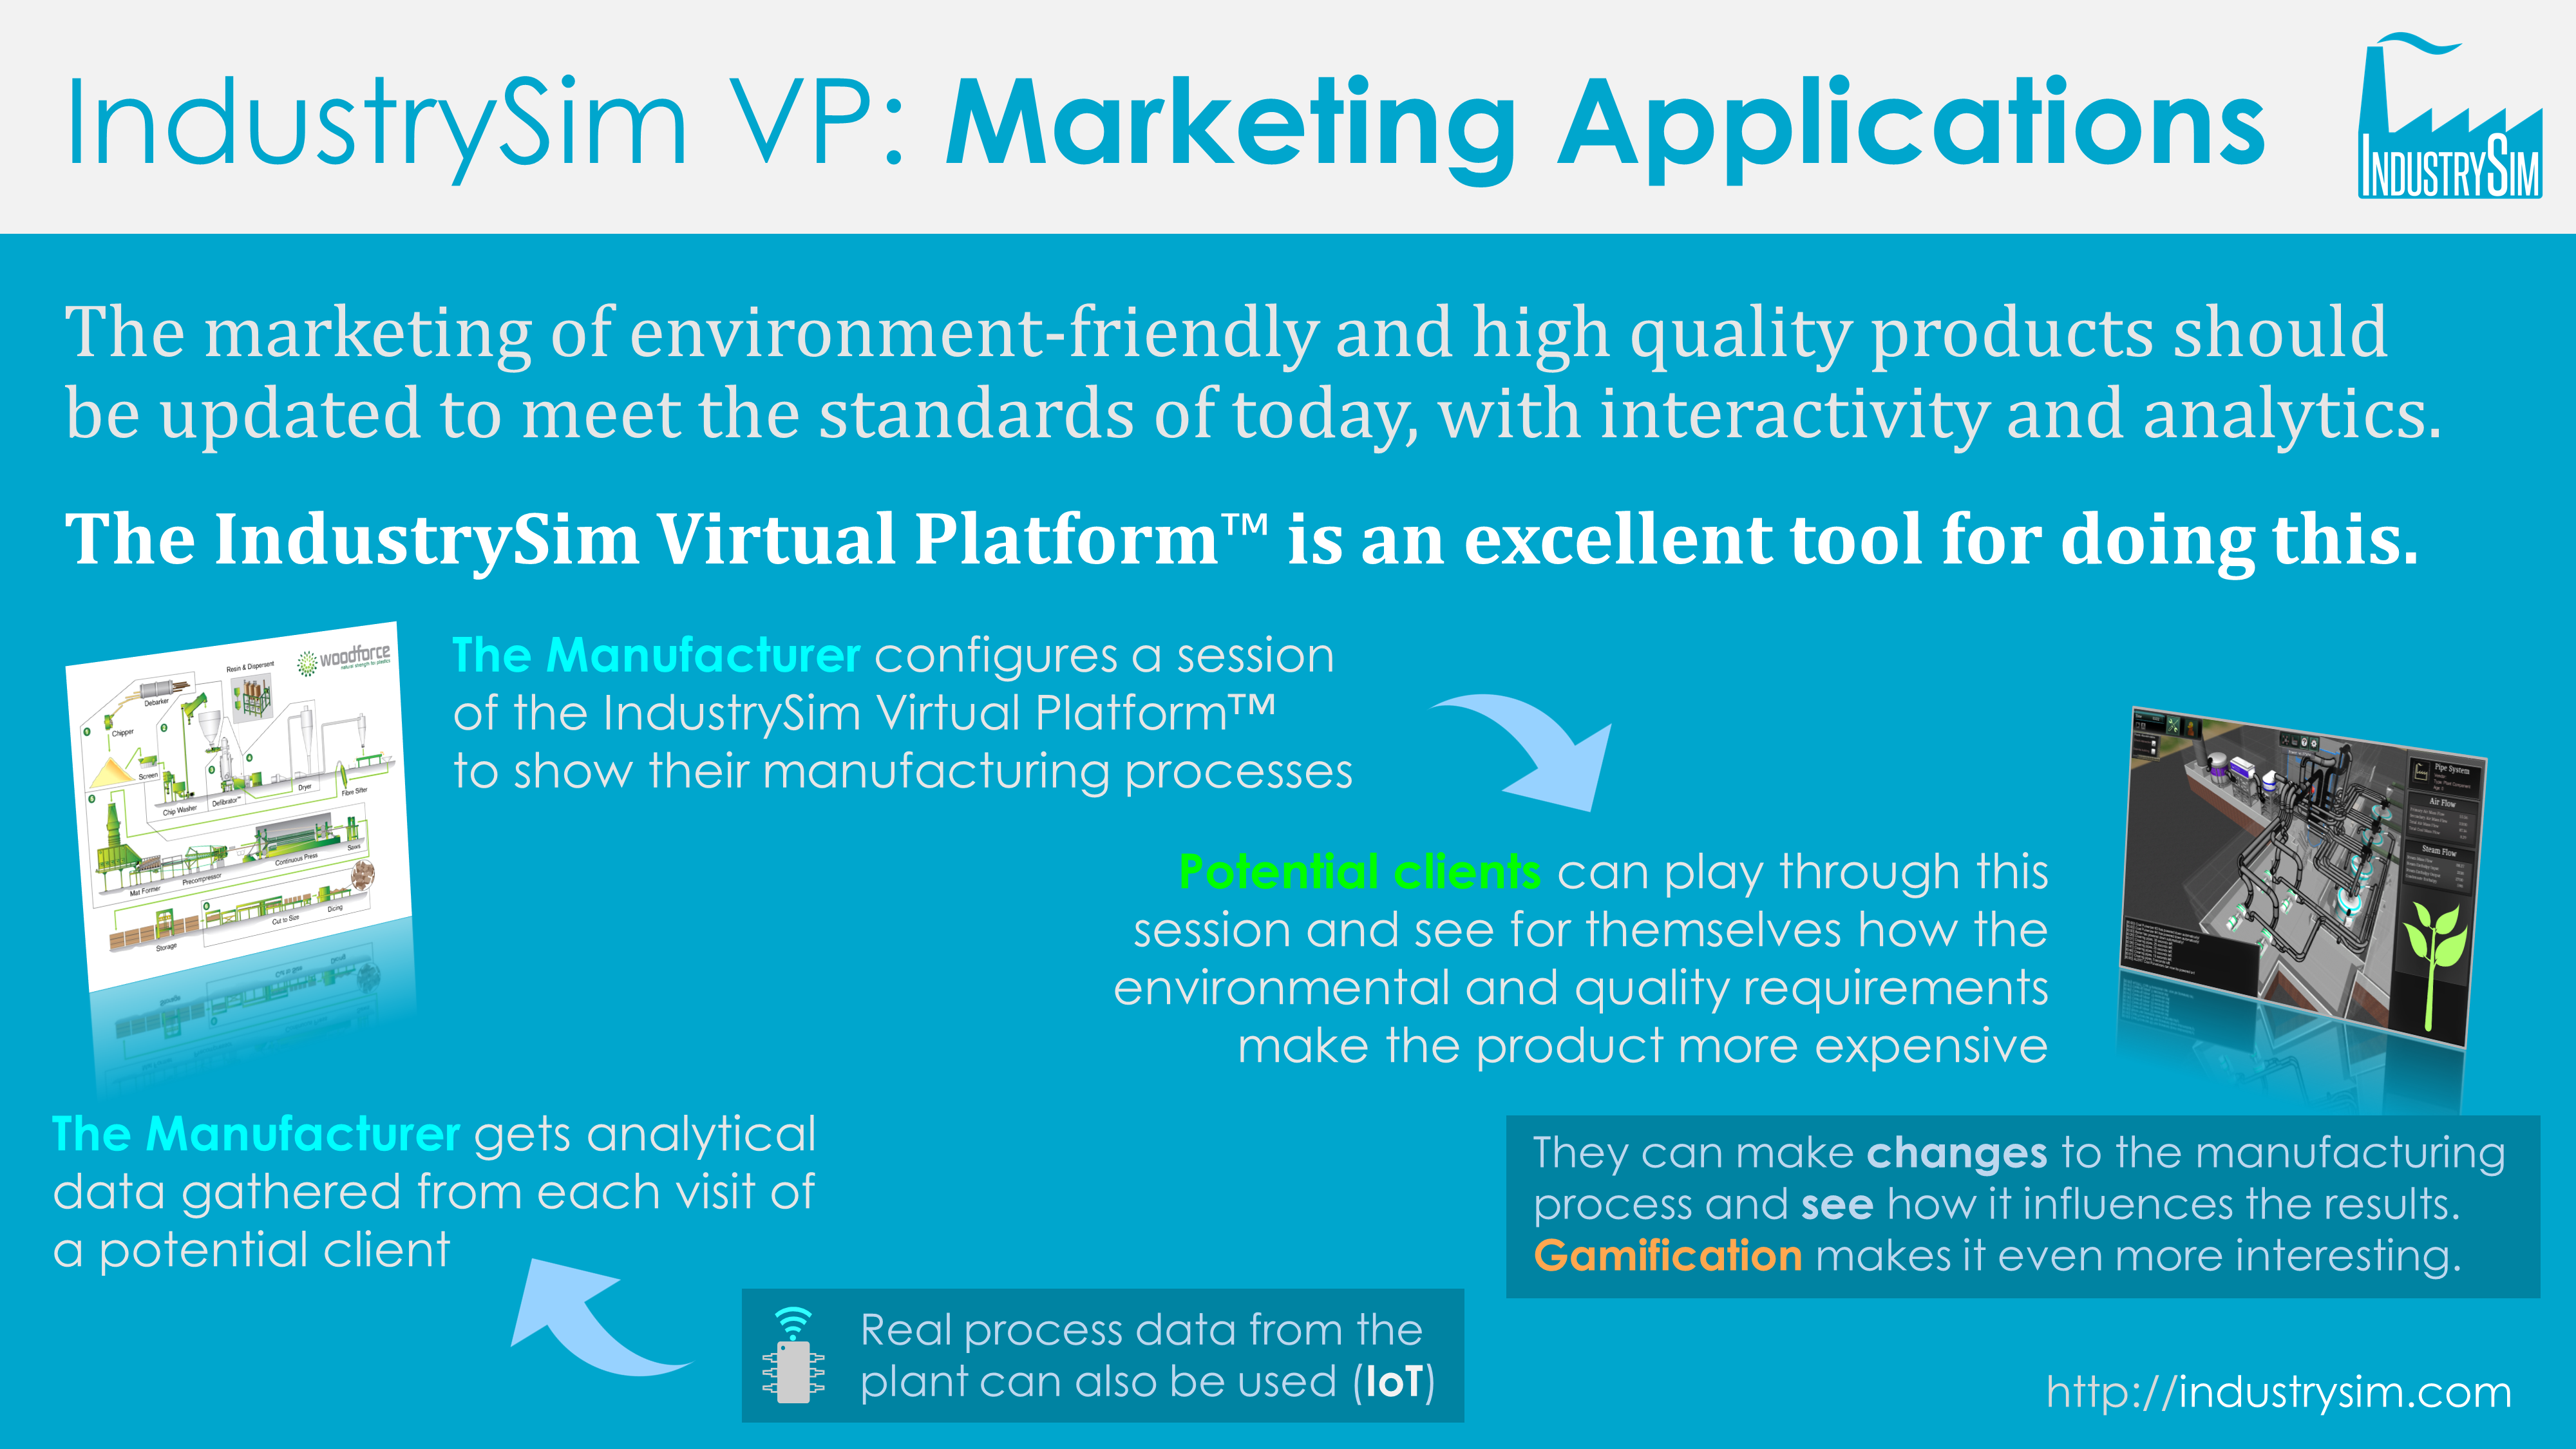 IndustrySim Virtual Platform - application for marketing of high quality, environment-friendly products